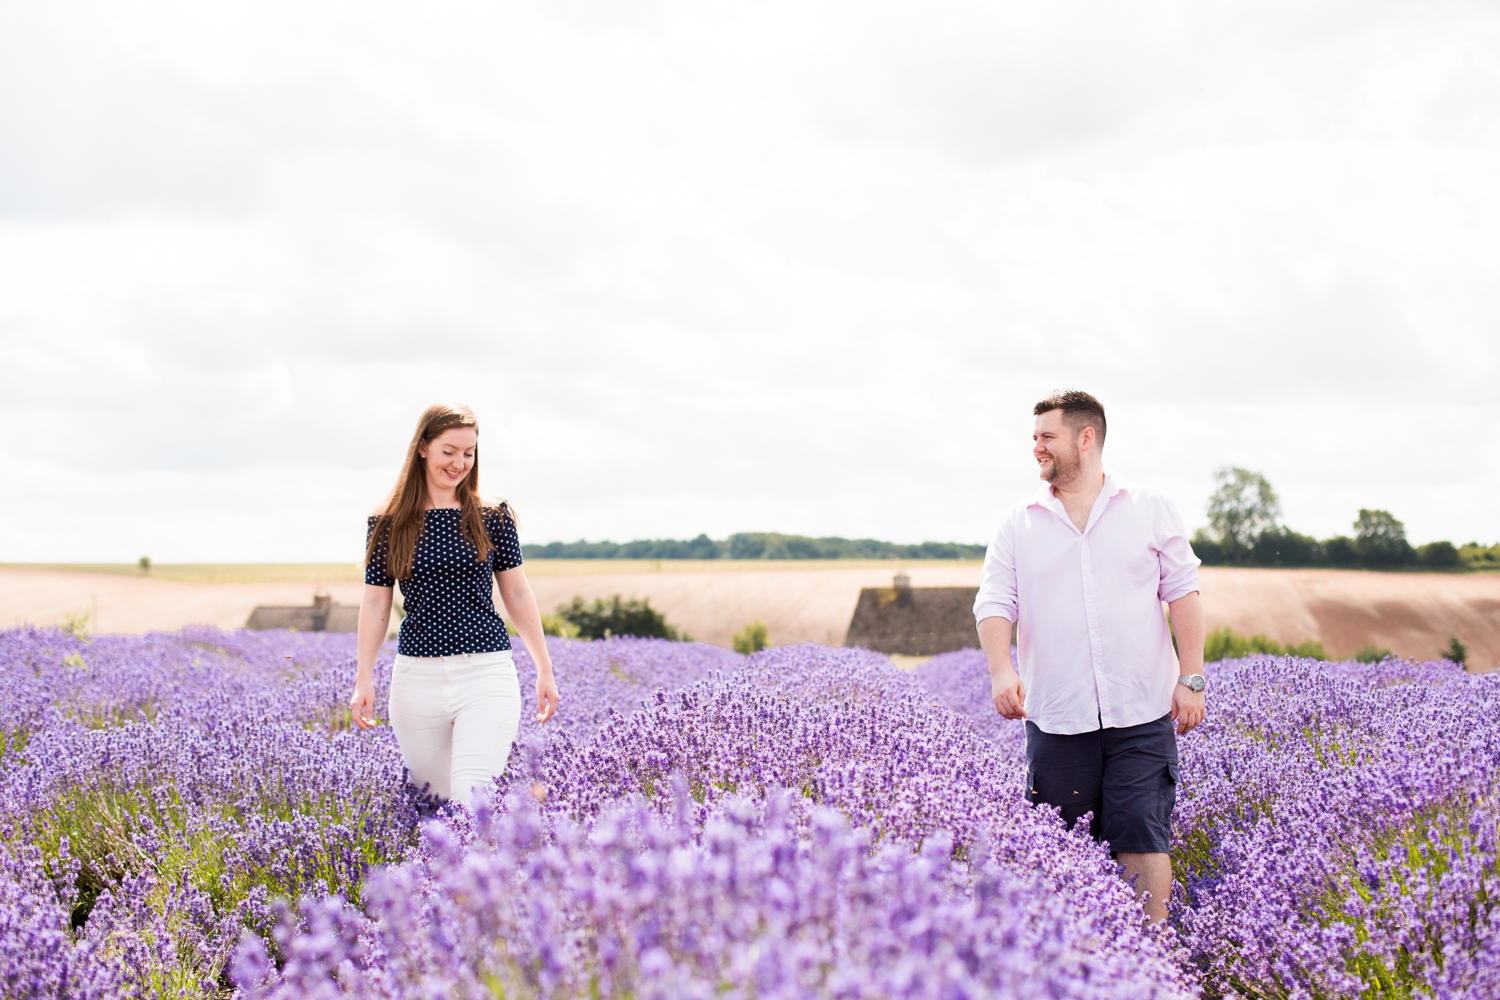 Sophie-Evans-Photograpy-Cotswold-Lavander-Engagement-shoot-Cotswold-wedding-photographer-28.jpg